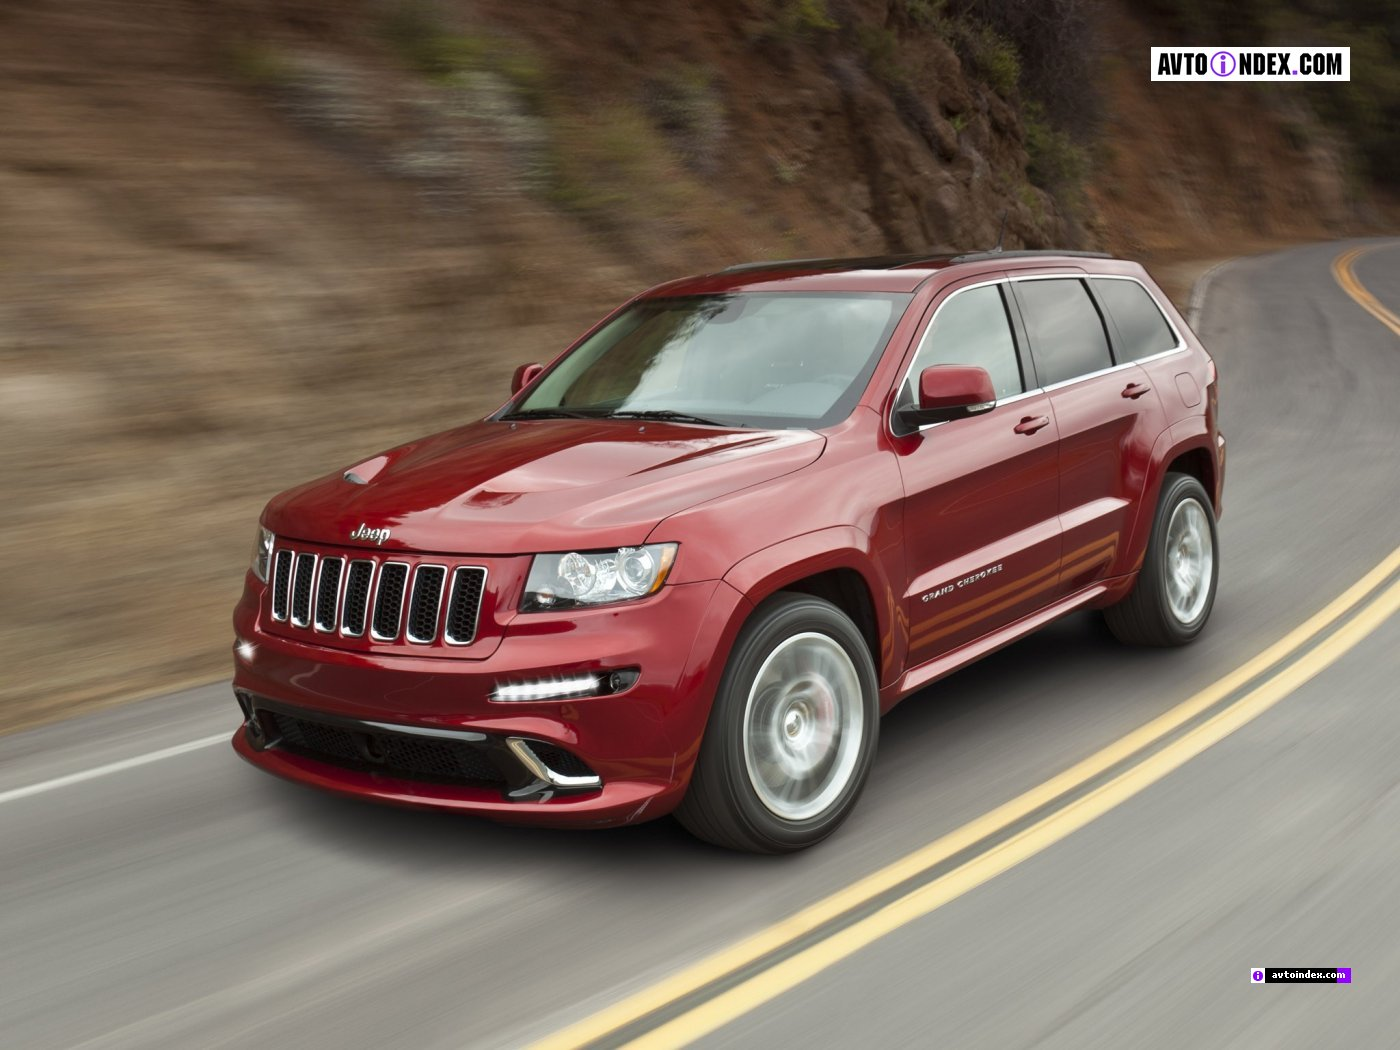 Jeep Grand Cherokee SUV 2011